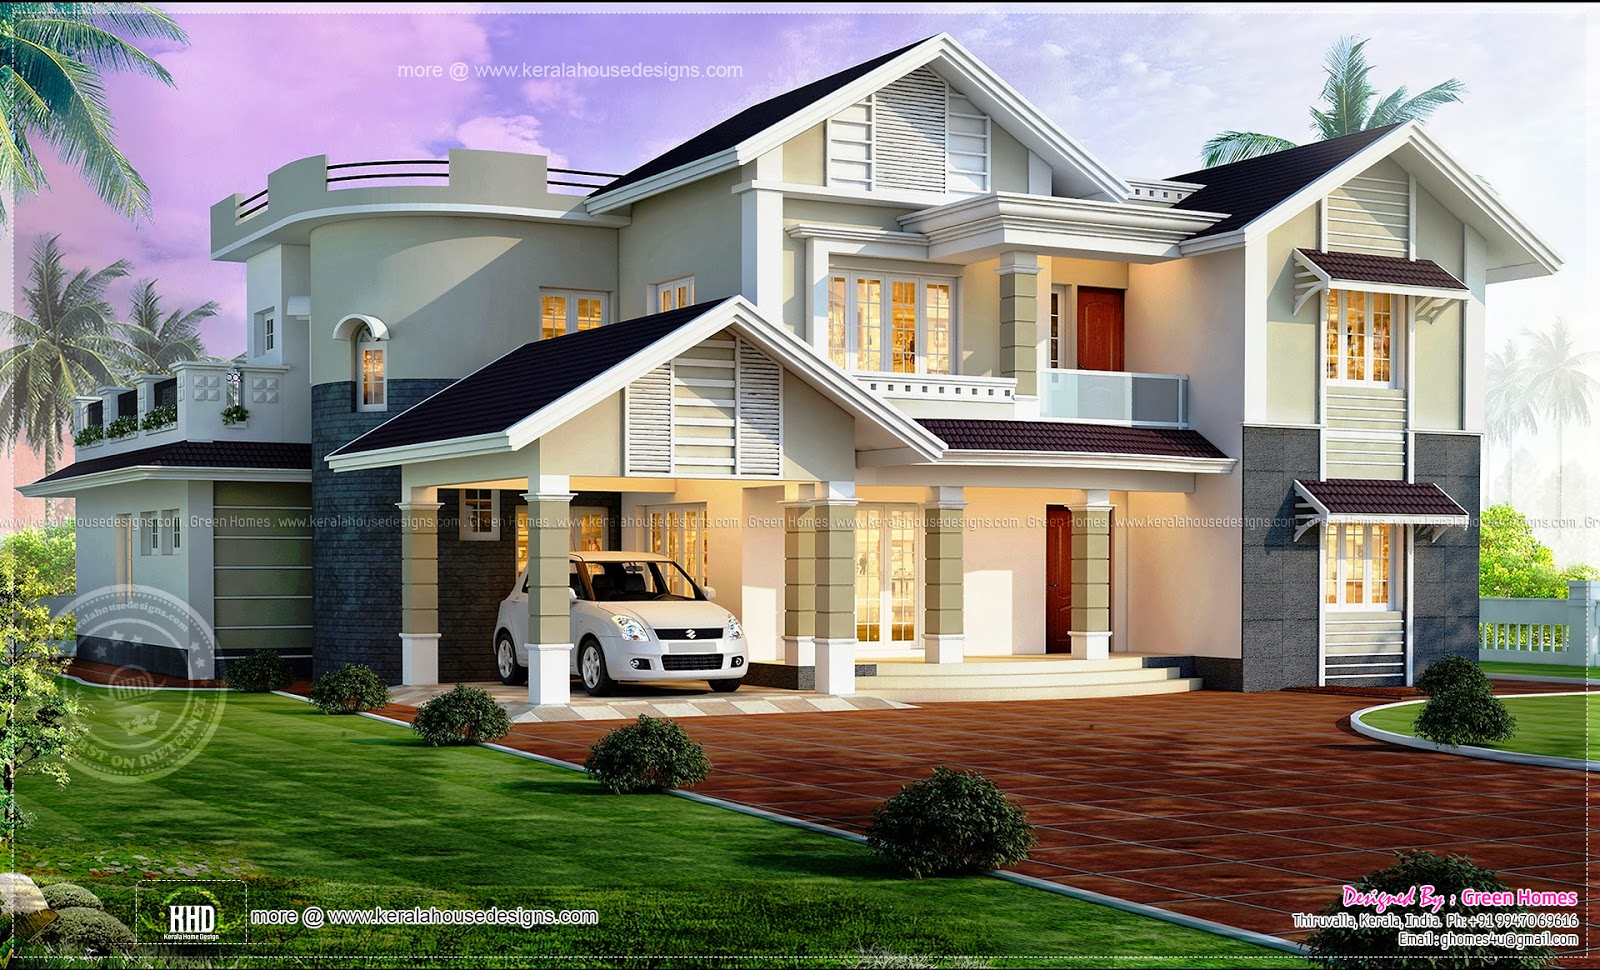 beautifulkeralahomejpg 1600970 Home design Pinterest